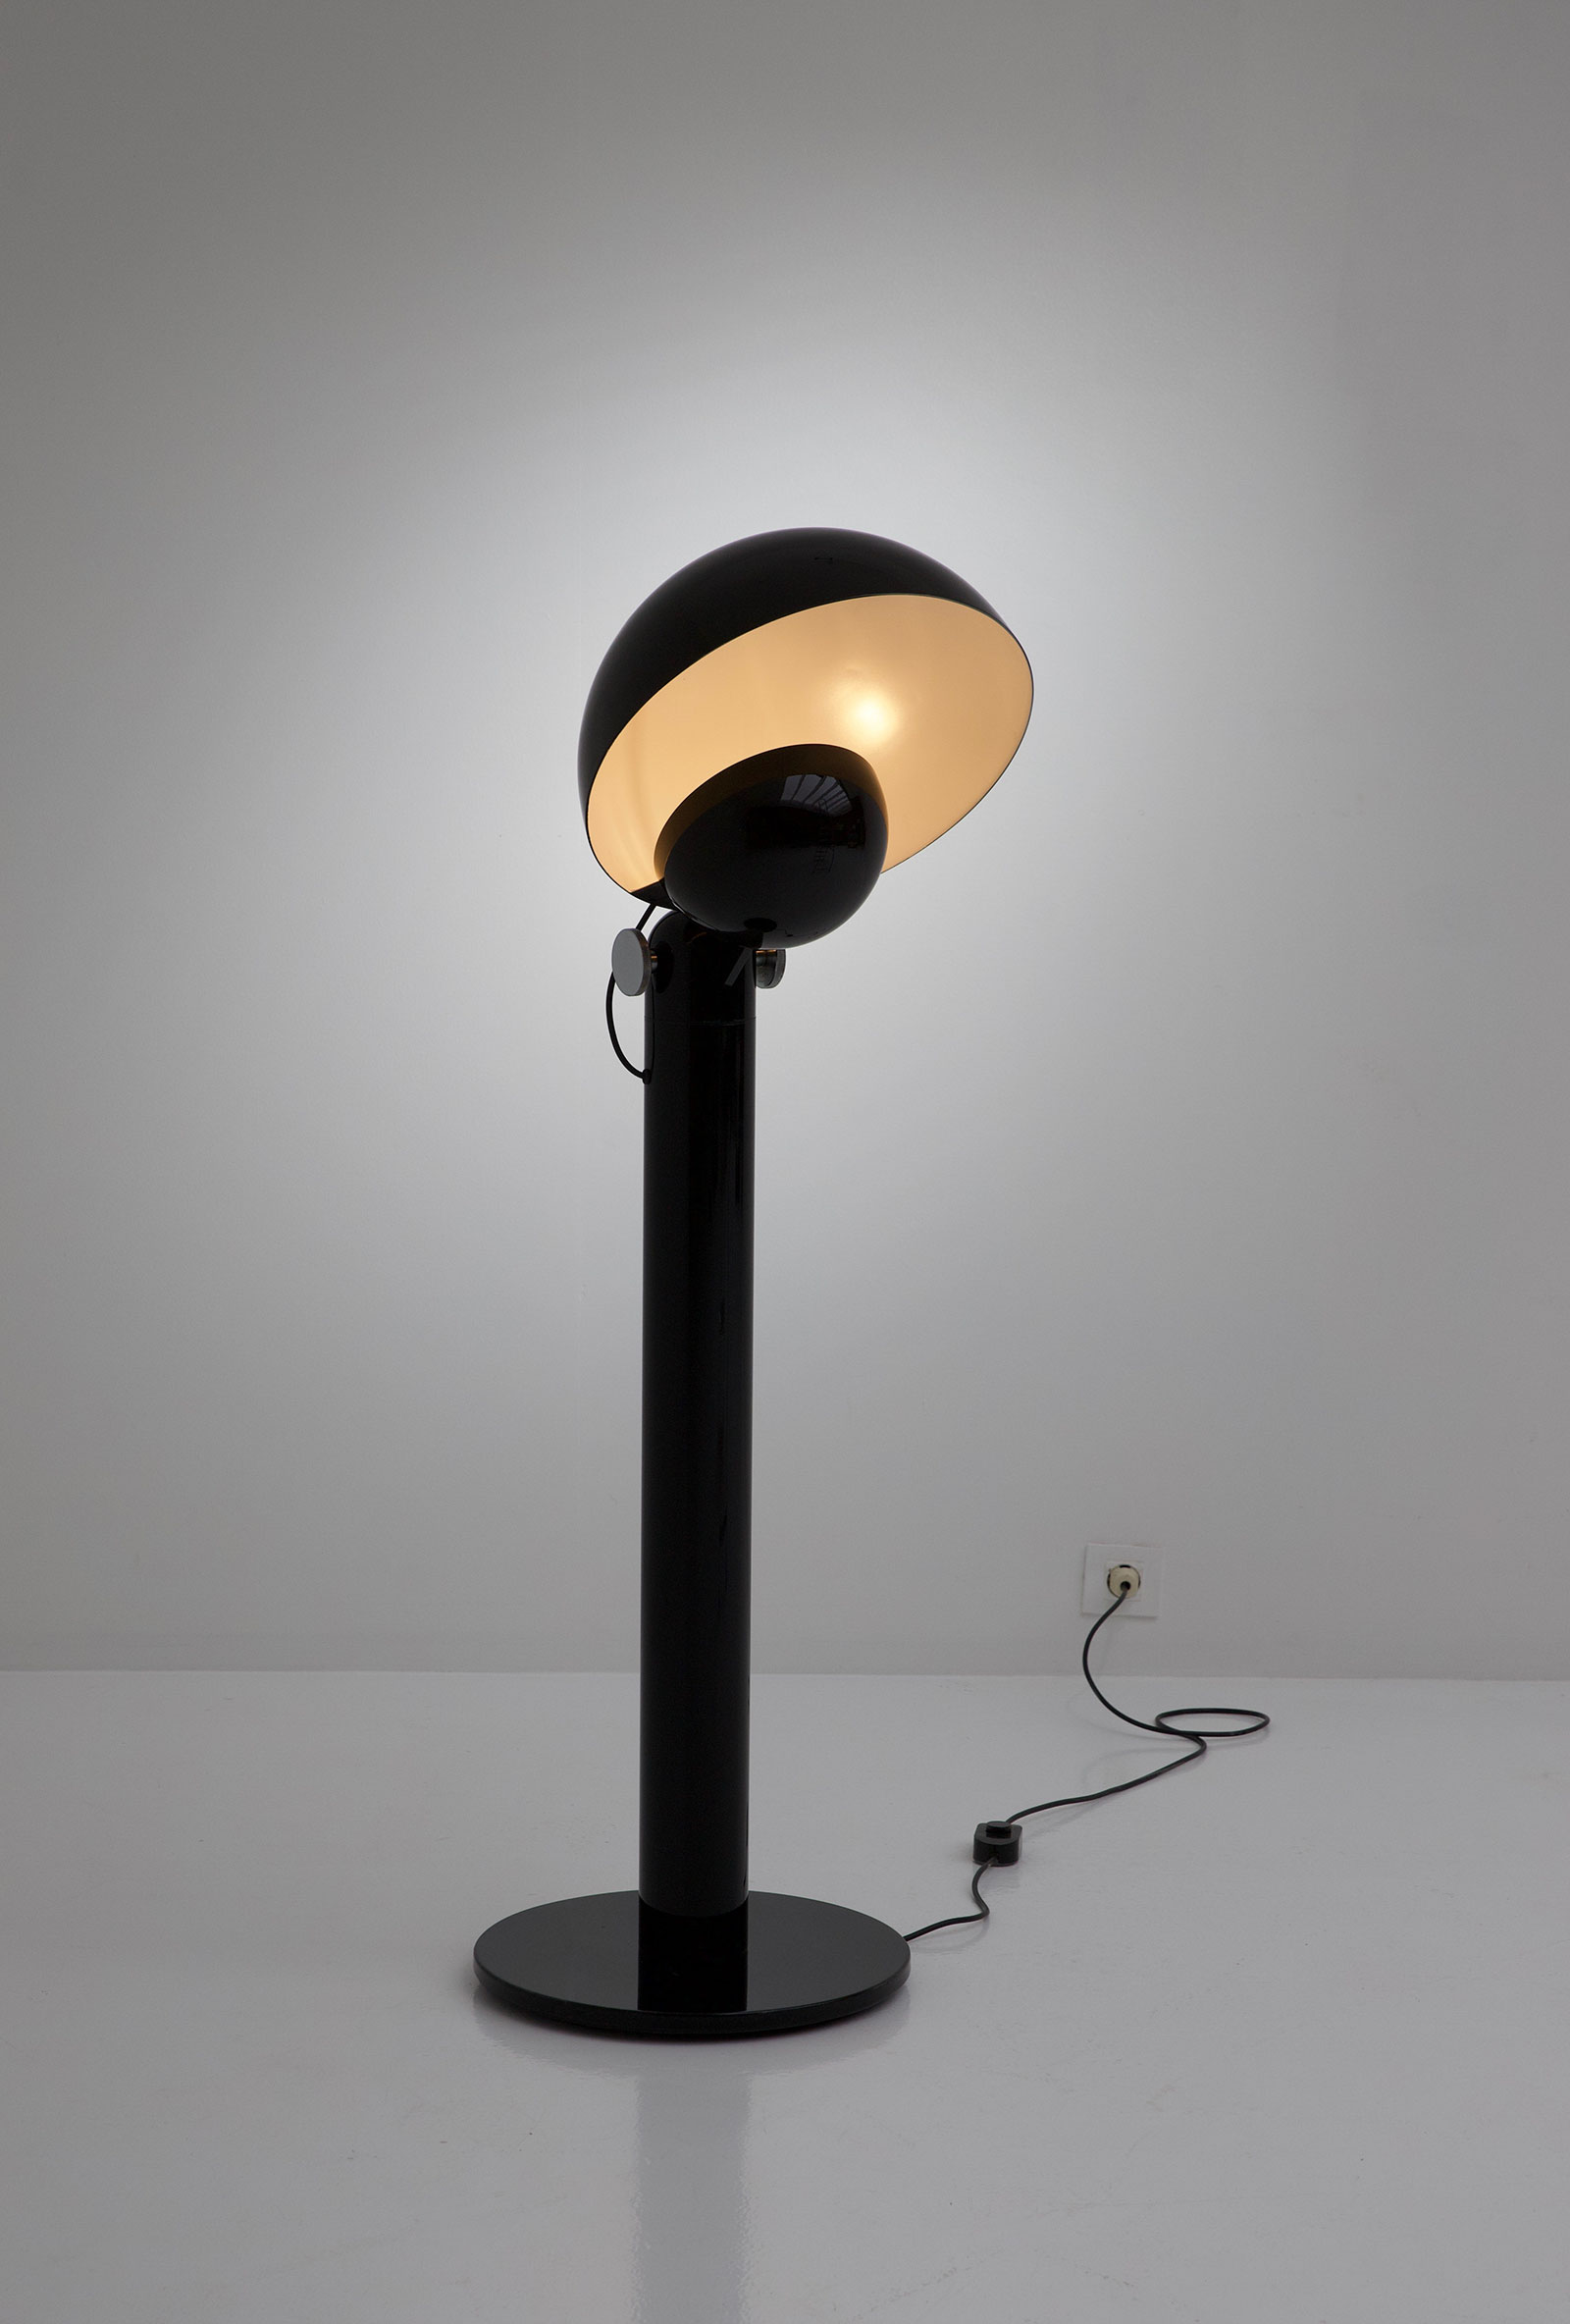 francesco buzzi cuffia floor lamp